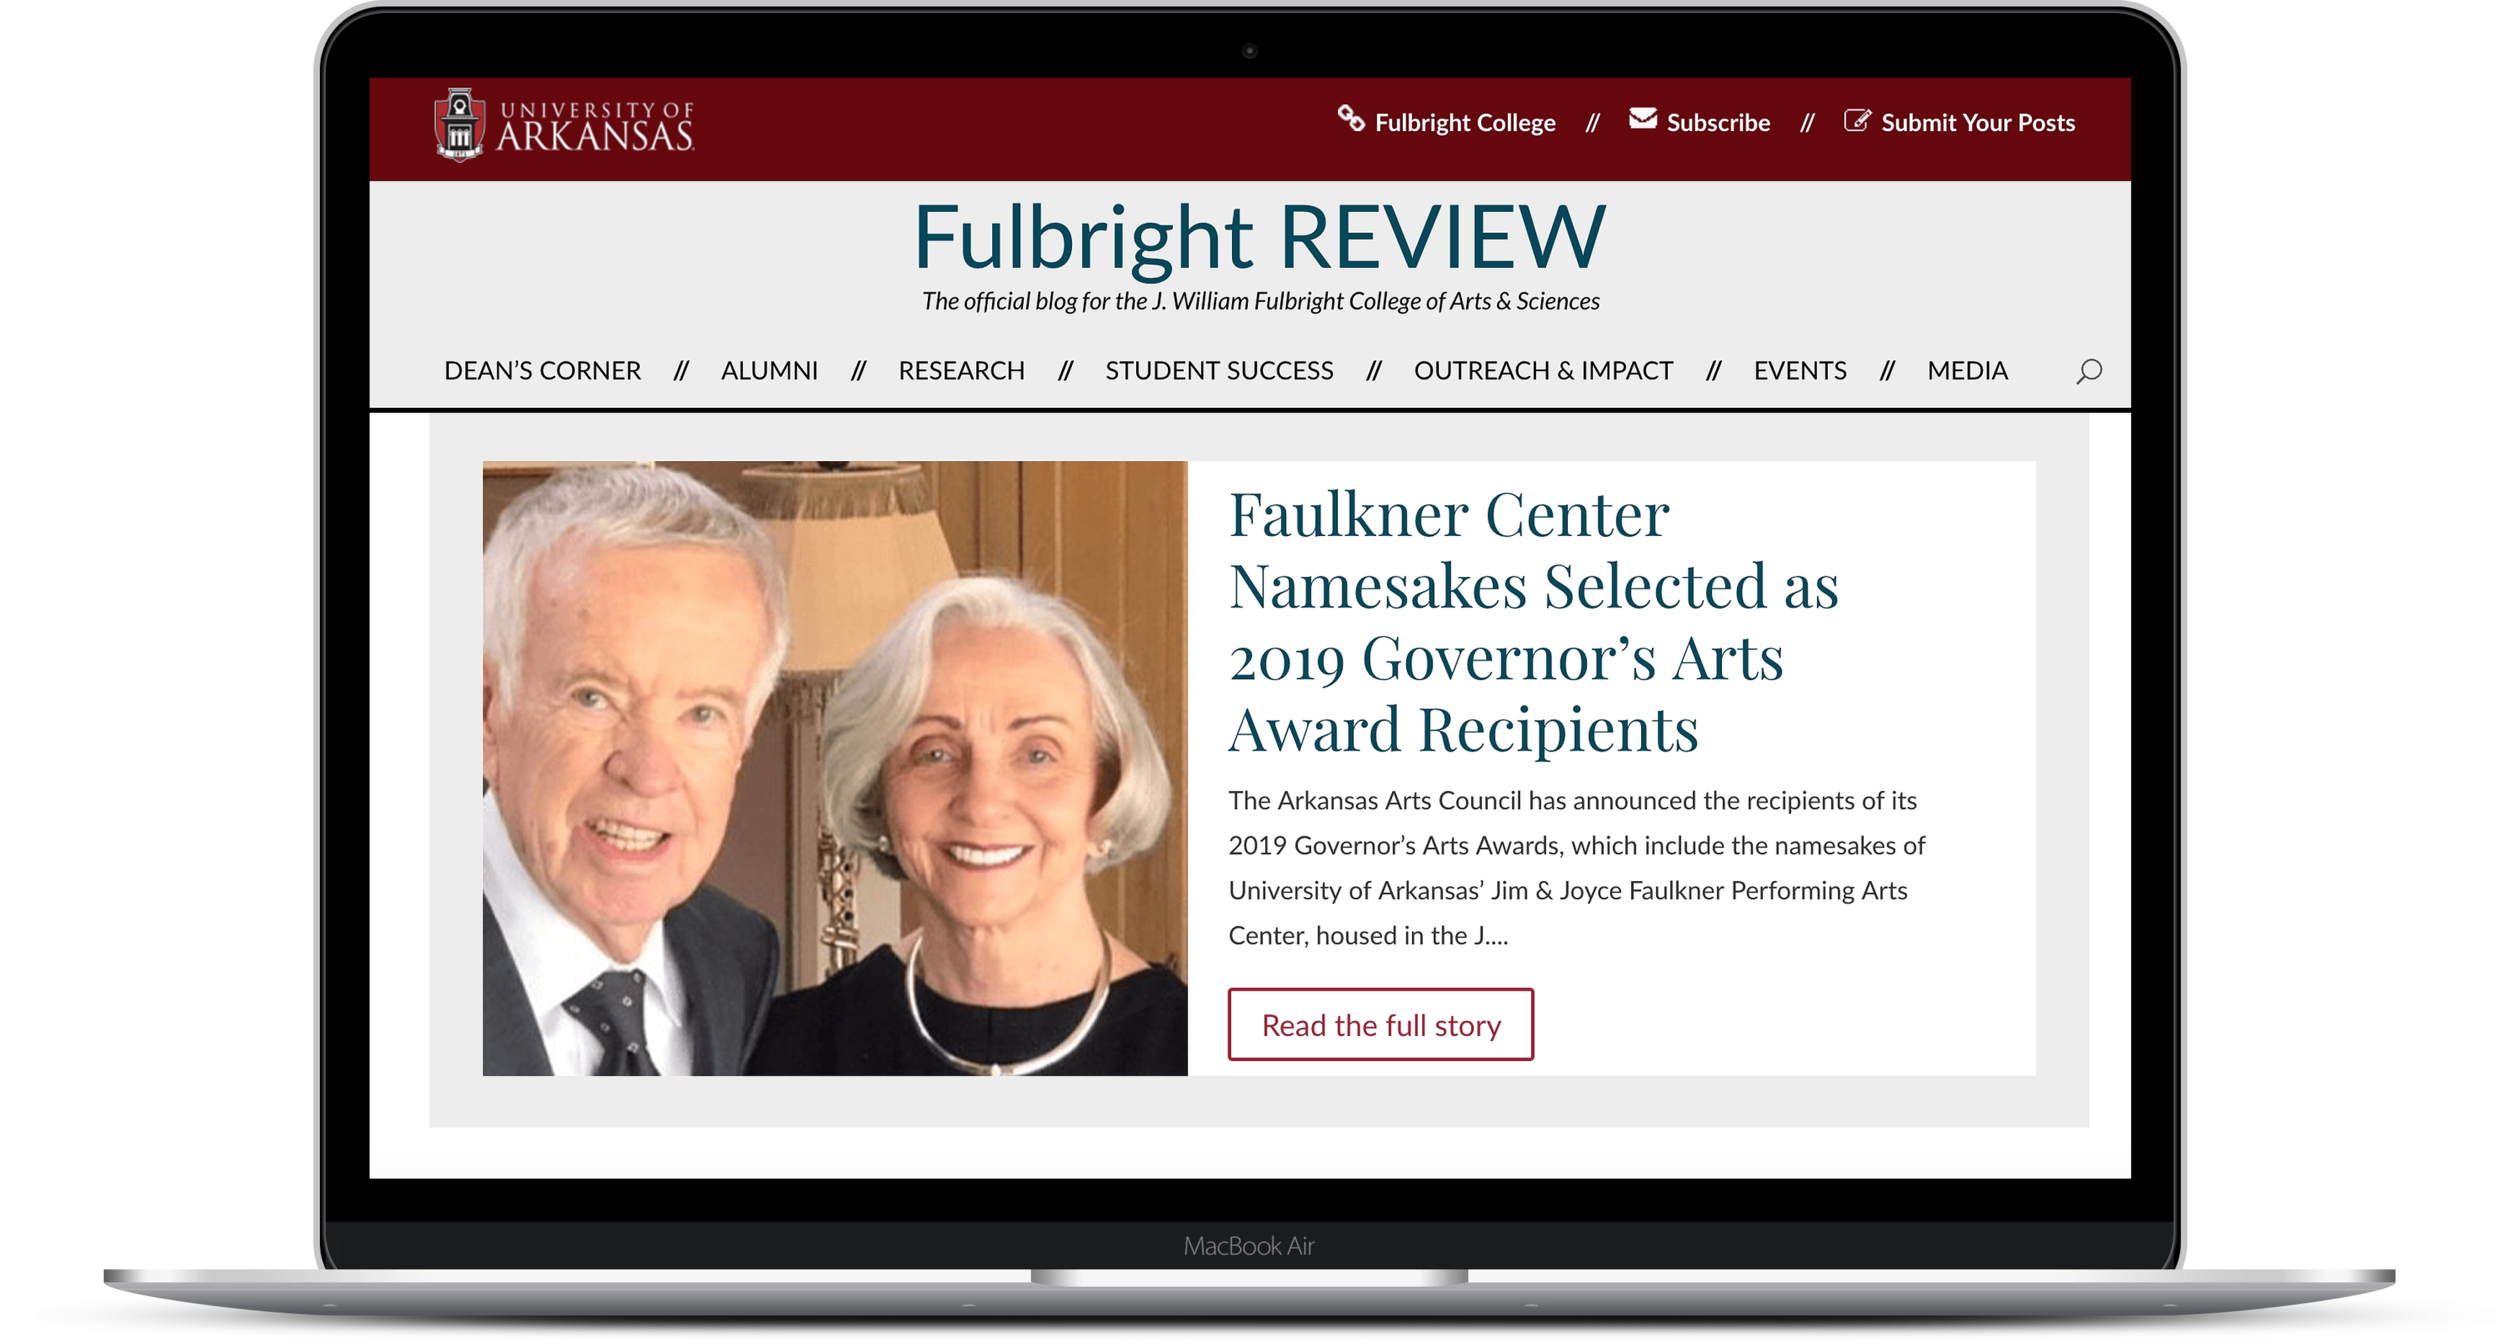 Fulbright REVIEW - The J William Fulbright College of Arts and Sciences at the University of Arkansas launched the Fulbright REVIEW as an online blog publication at the start of the Fall 2018 semester. The project was a complete overhaul and migration of the Fulbright REVIEW's previous editions. The new blog format is a WordPress site which houses hundreds of stories about student life and the latest news from Fulbright College.Designed and developed under supervision of Morgan BibbsVISIT THE SITE